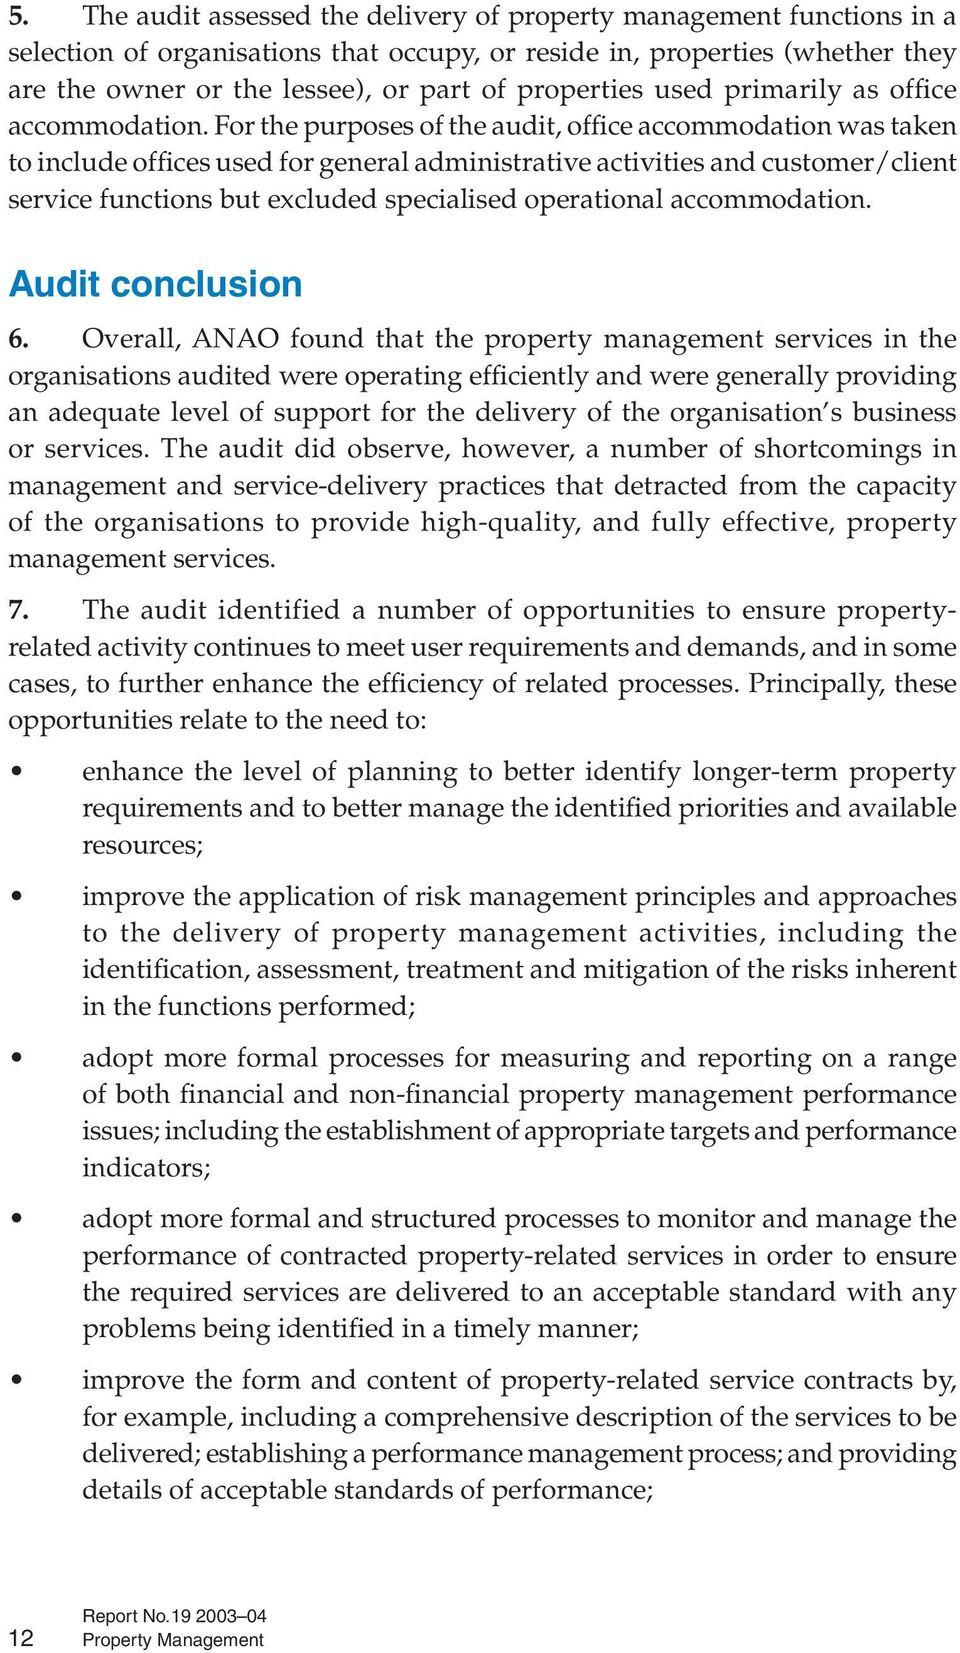 For the purposes of the audit, office accommodation was taken to include offices used for general administrative activities and customer/client service functions but excluded specialised operational